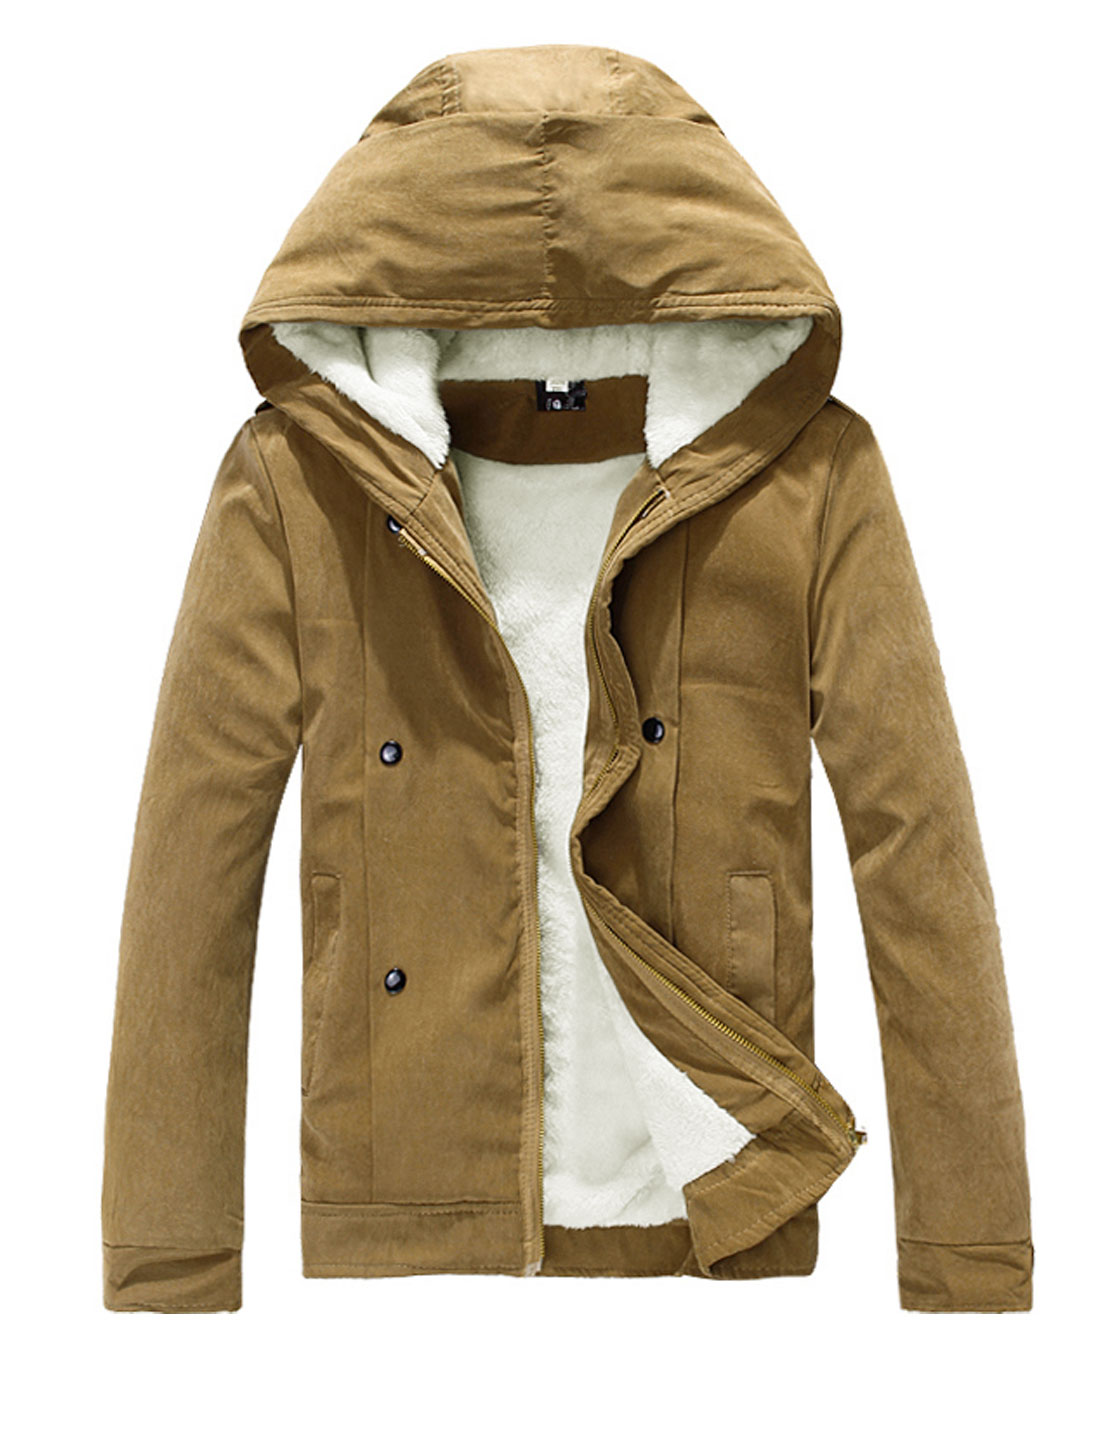 New Style Leisure Hooded Design Fleece Inside Jacket for Men Camel M